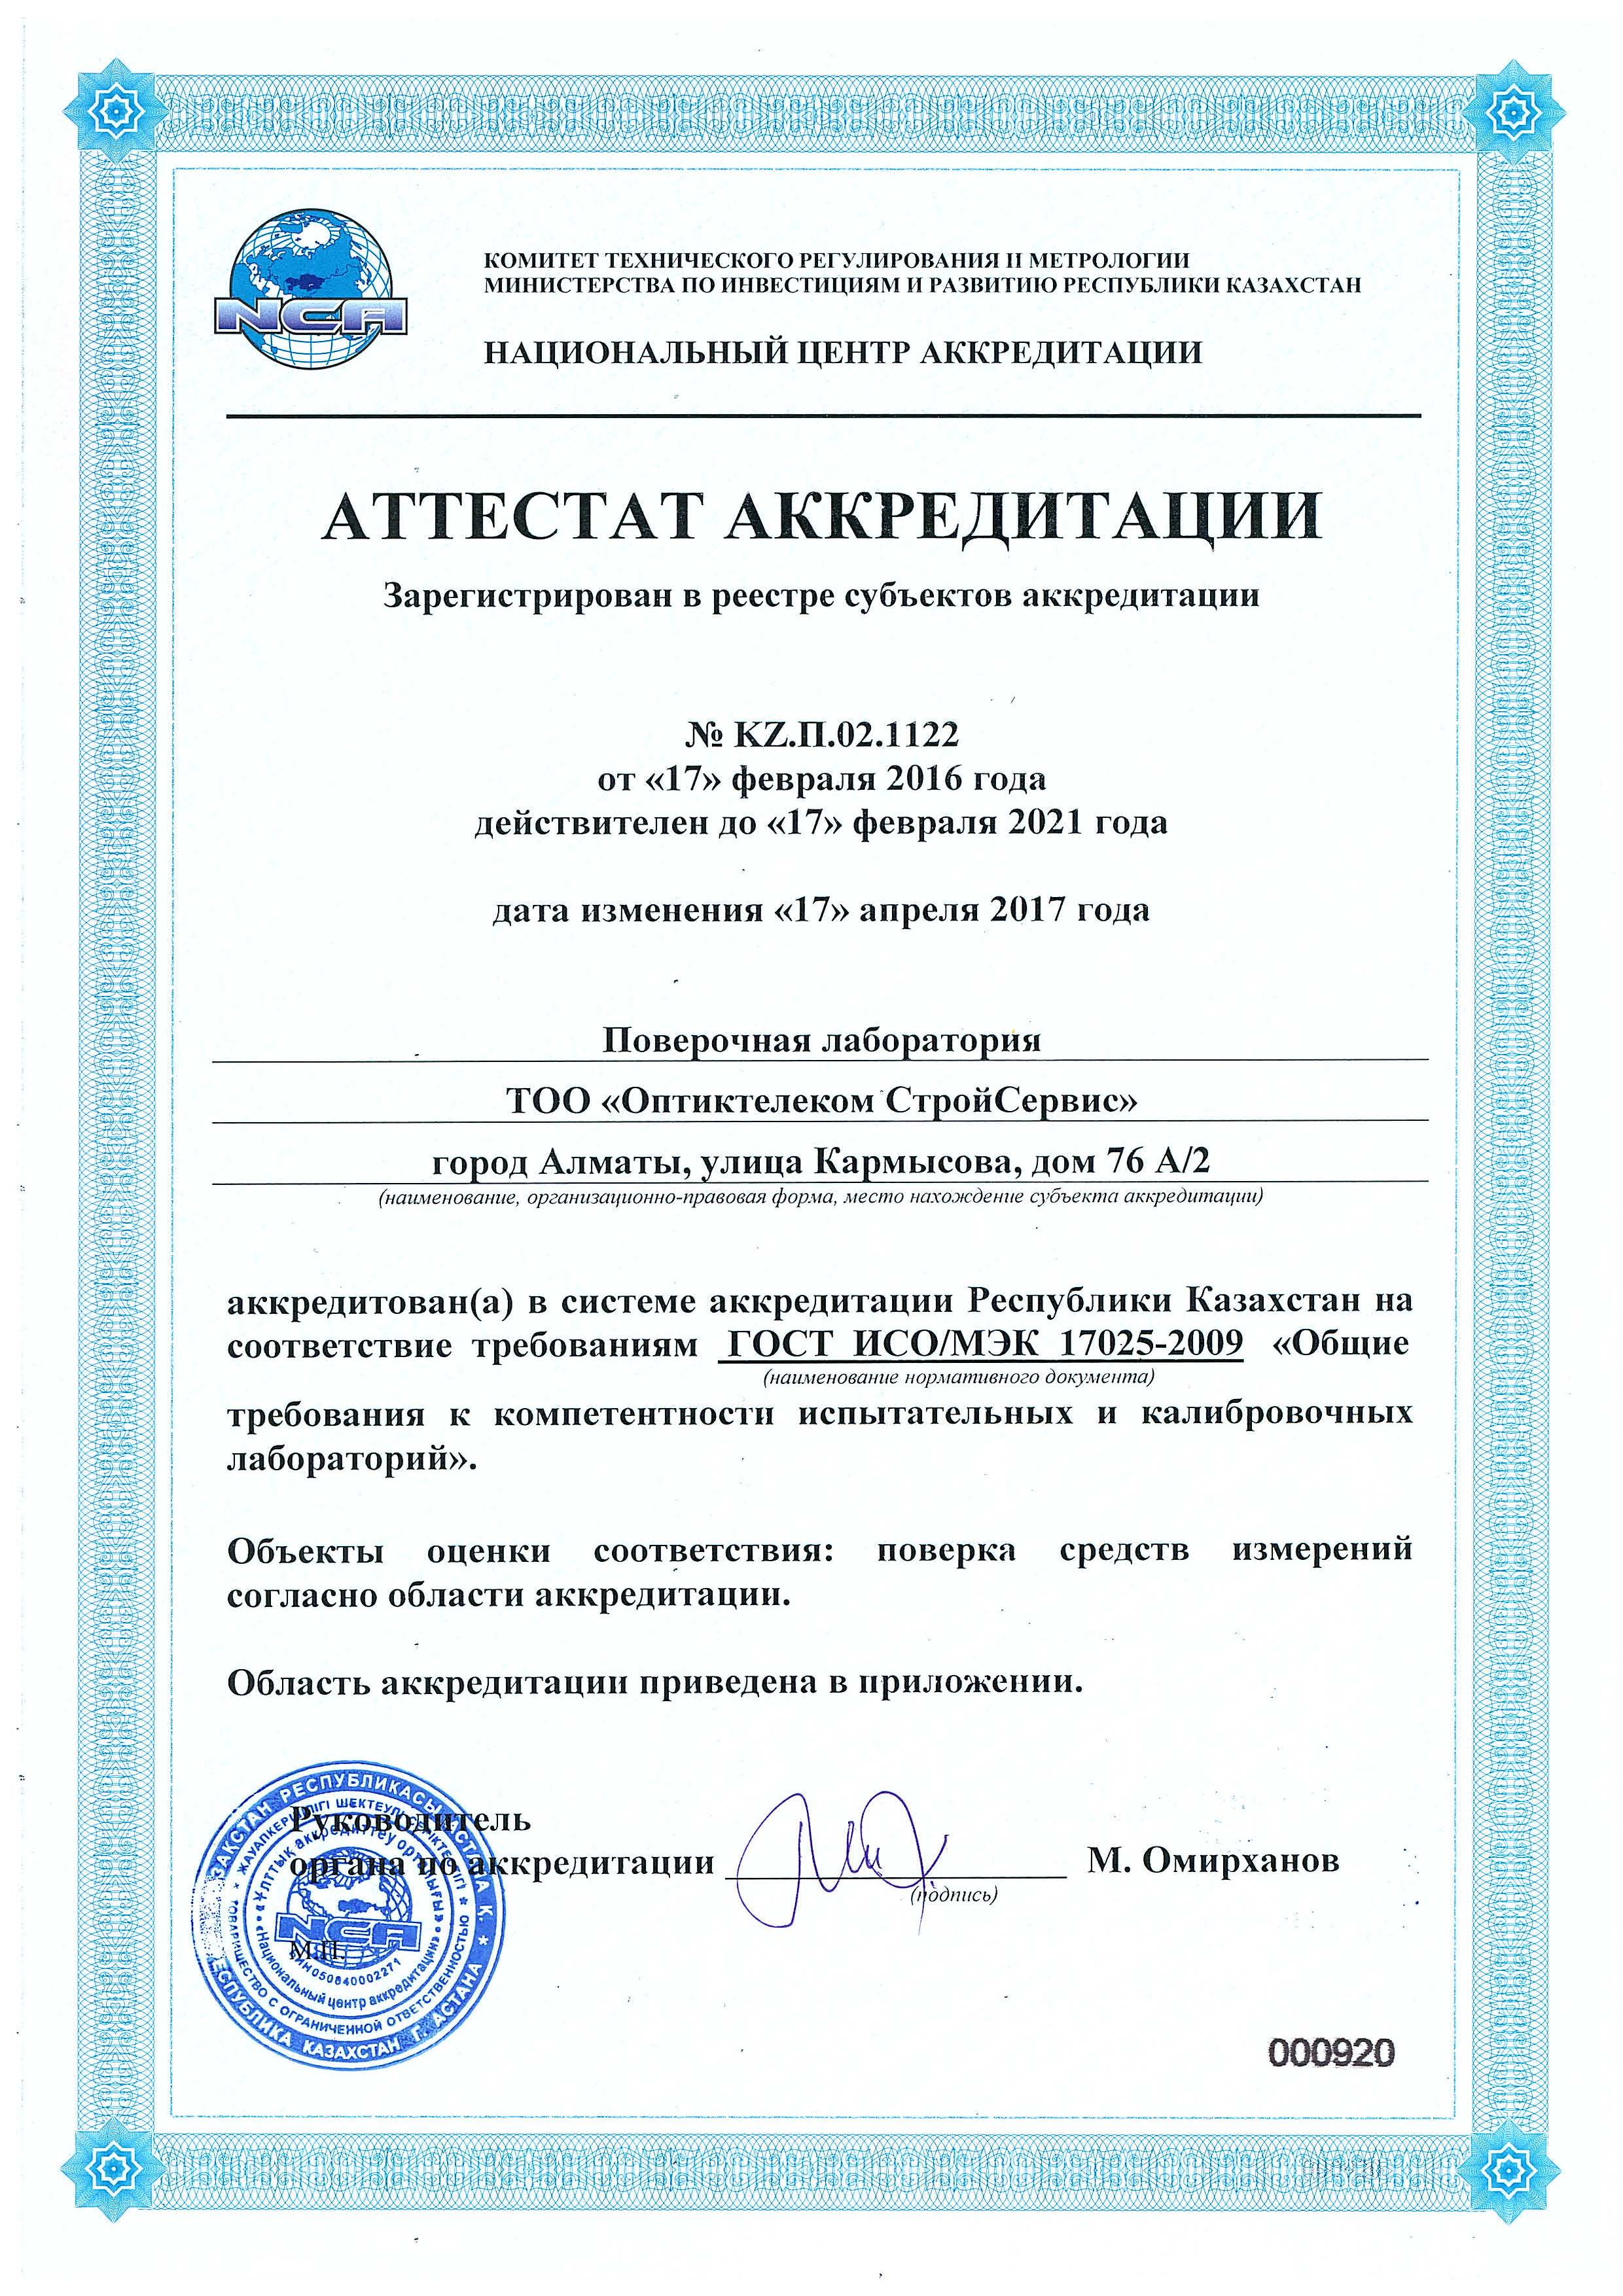 Verification laboratory accreditation